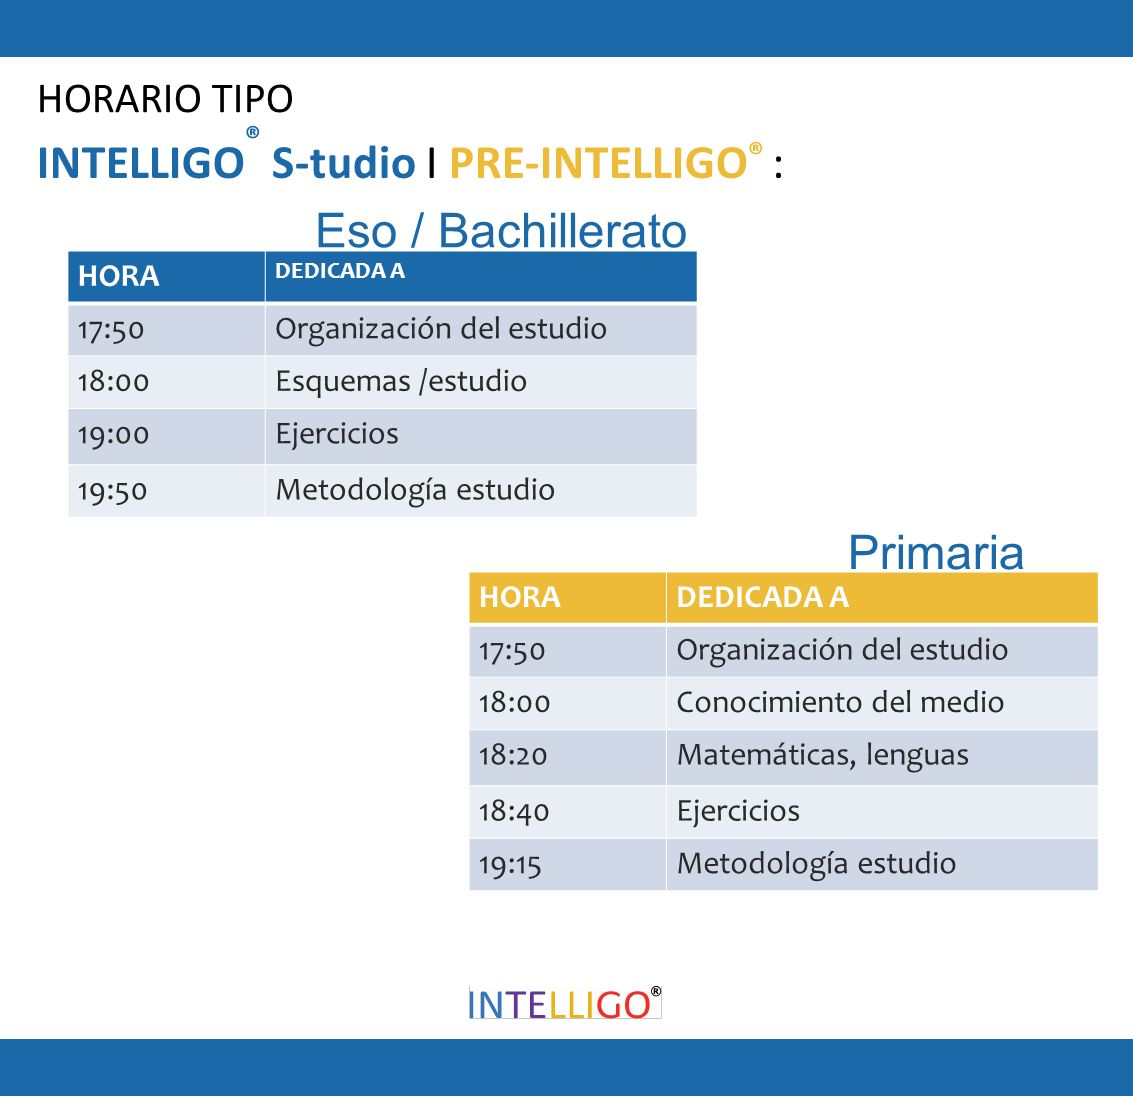 INTELLIGO® S-tudio I PRE-INTELLIGO® : Eso / Bachillerato